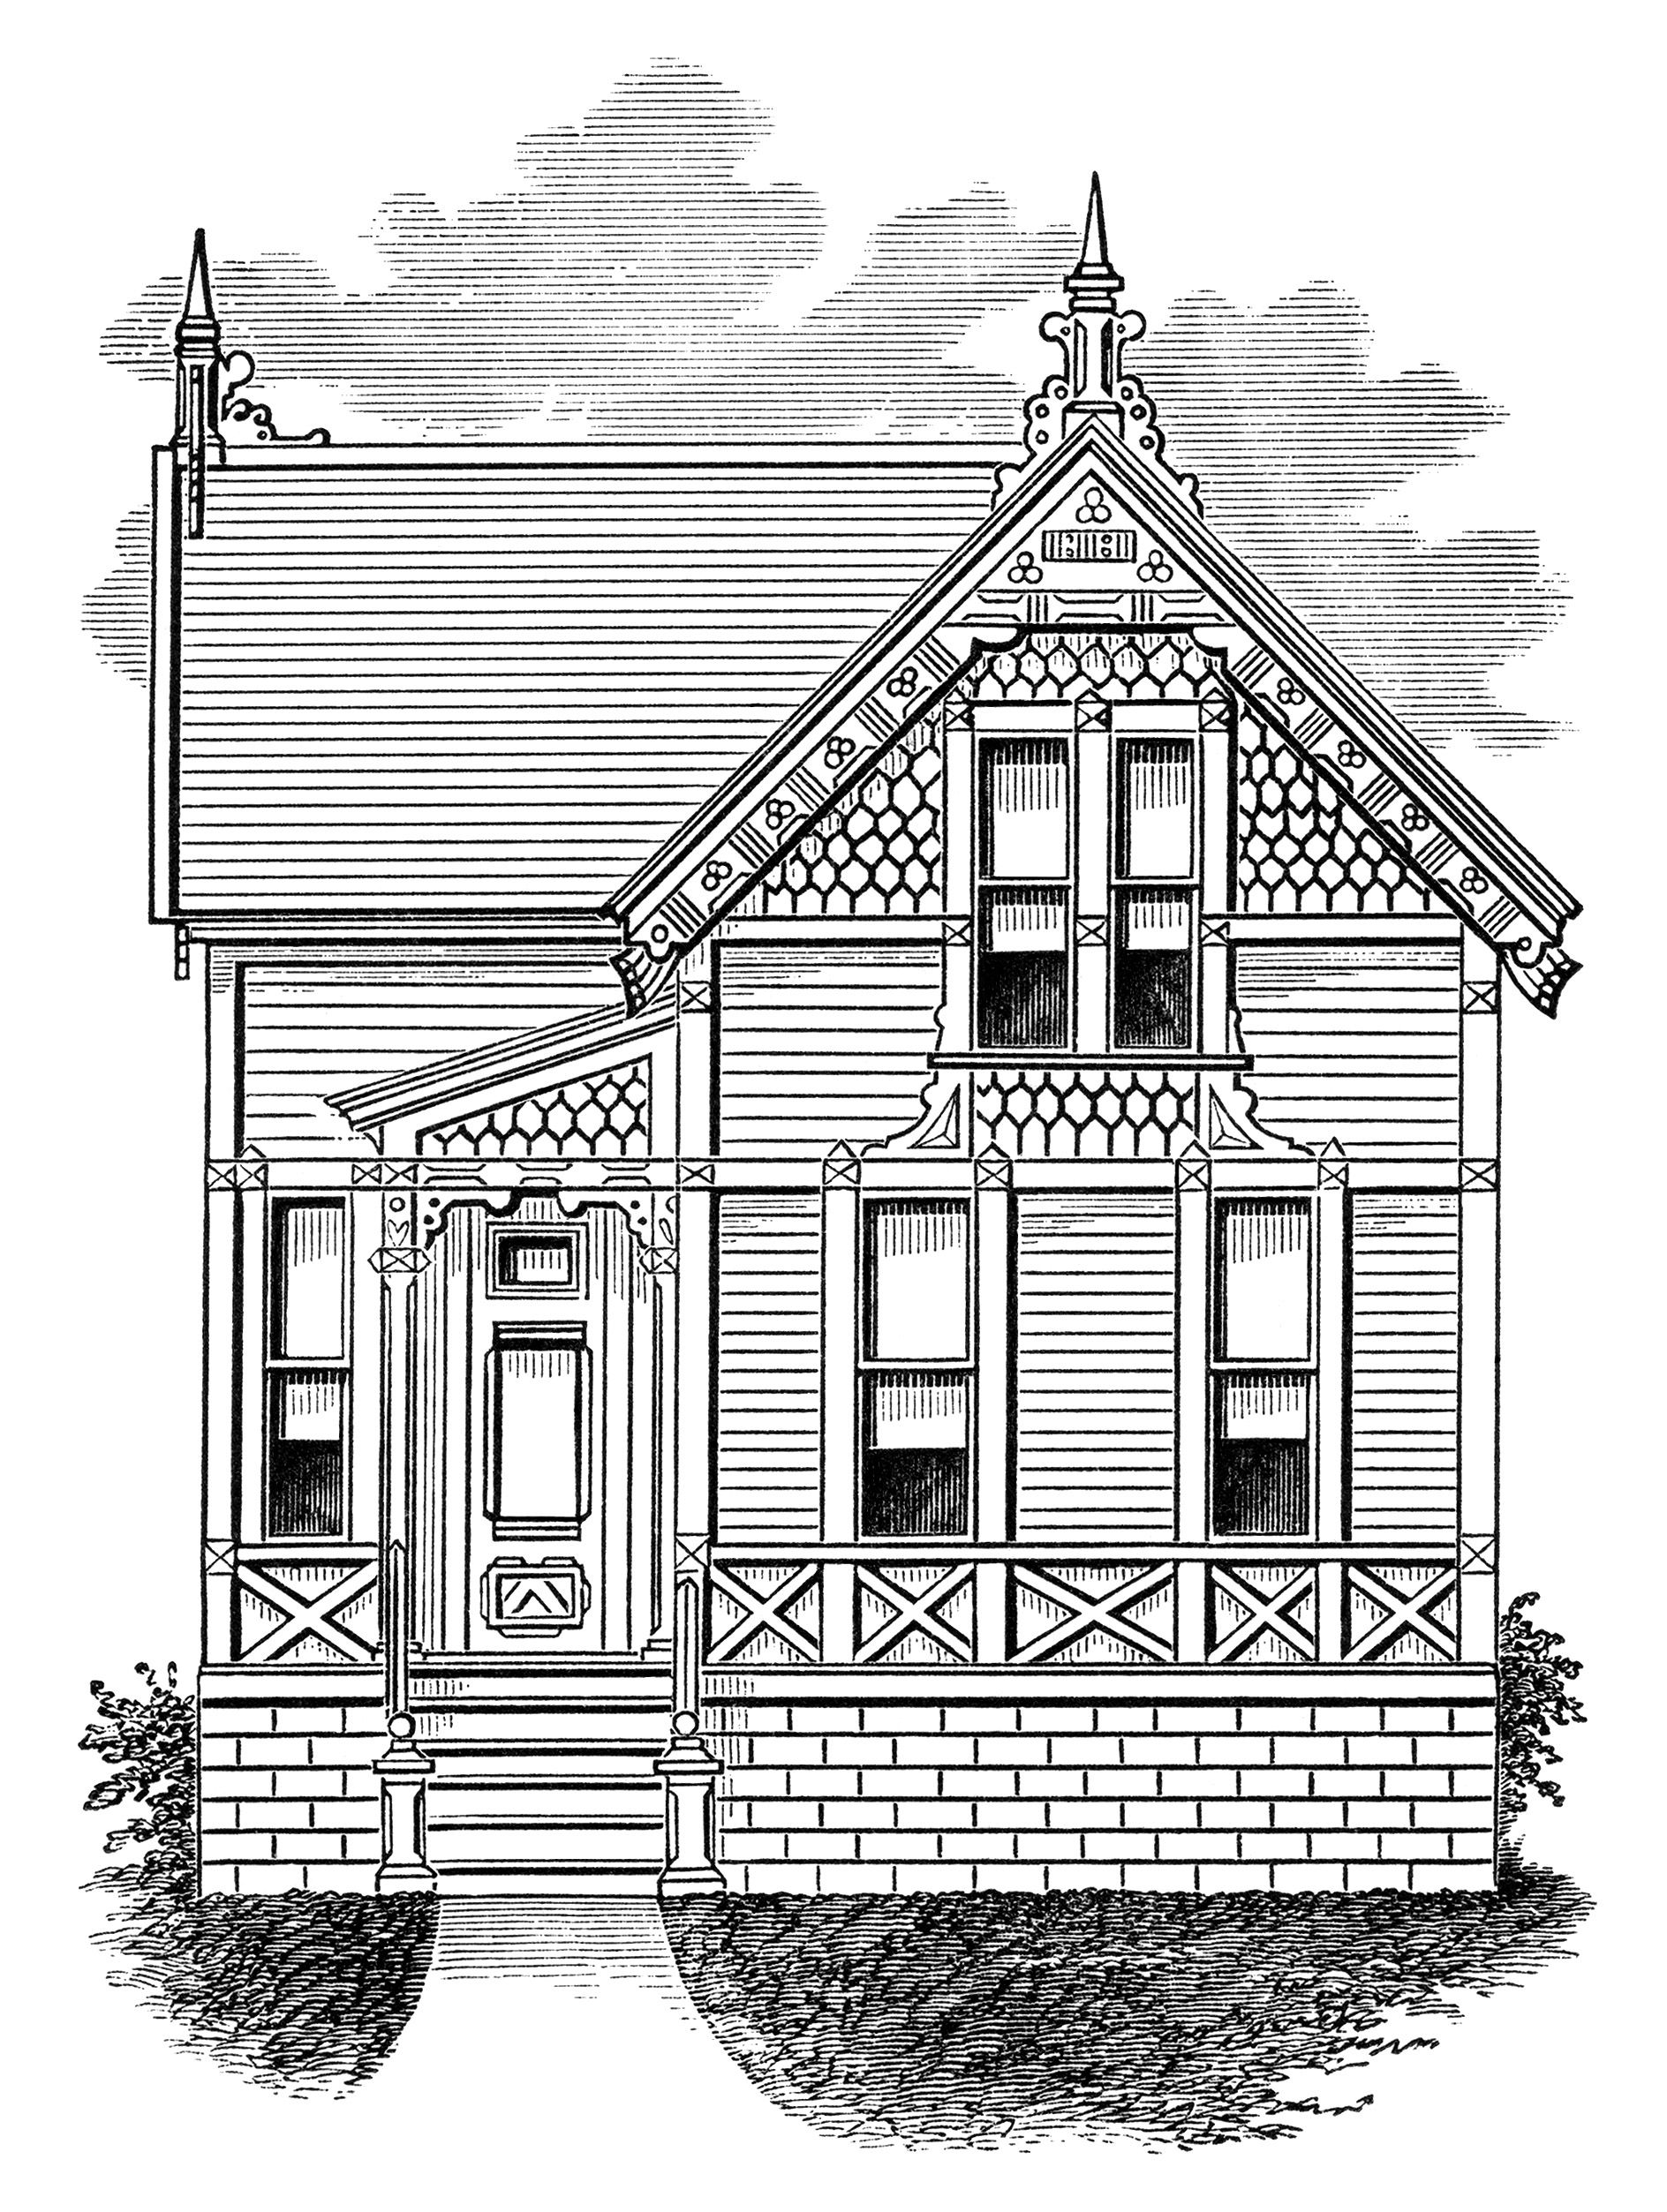 Sun above house clipart black and white transparent download small+old+house+Victorian | ... vintage home clipart, antique house ... transparent download